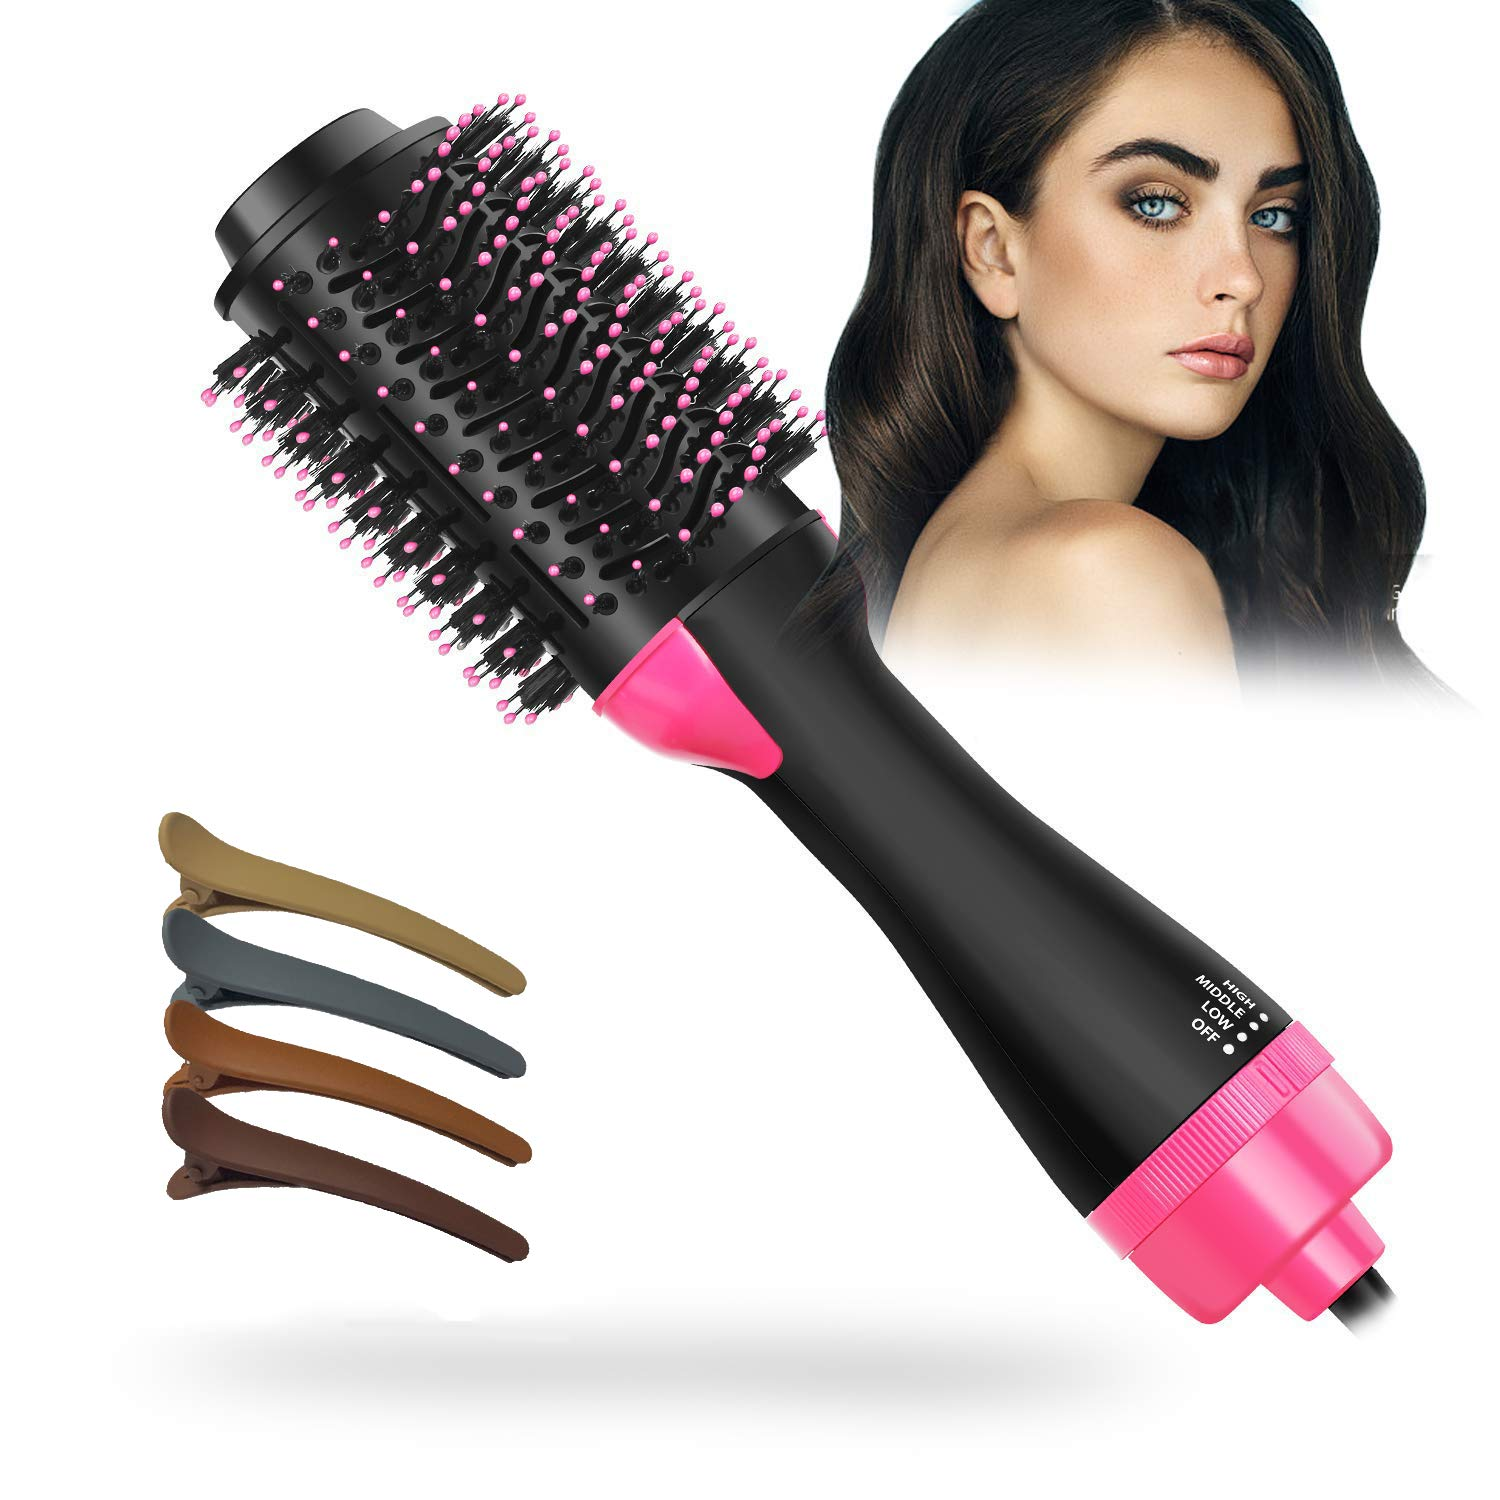 One-Step Hair Dryer & Volumizer,Hair Dryer Brush 2-in-1 Multi-functional Negative Ion Hair Straightener Curler Brush Reduce Frizz and Static for All Hair Types, 4pcs Hair Clips